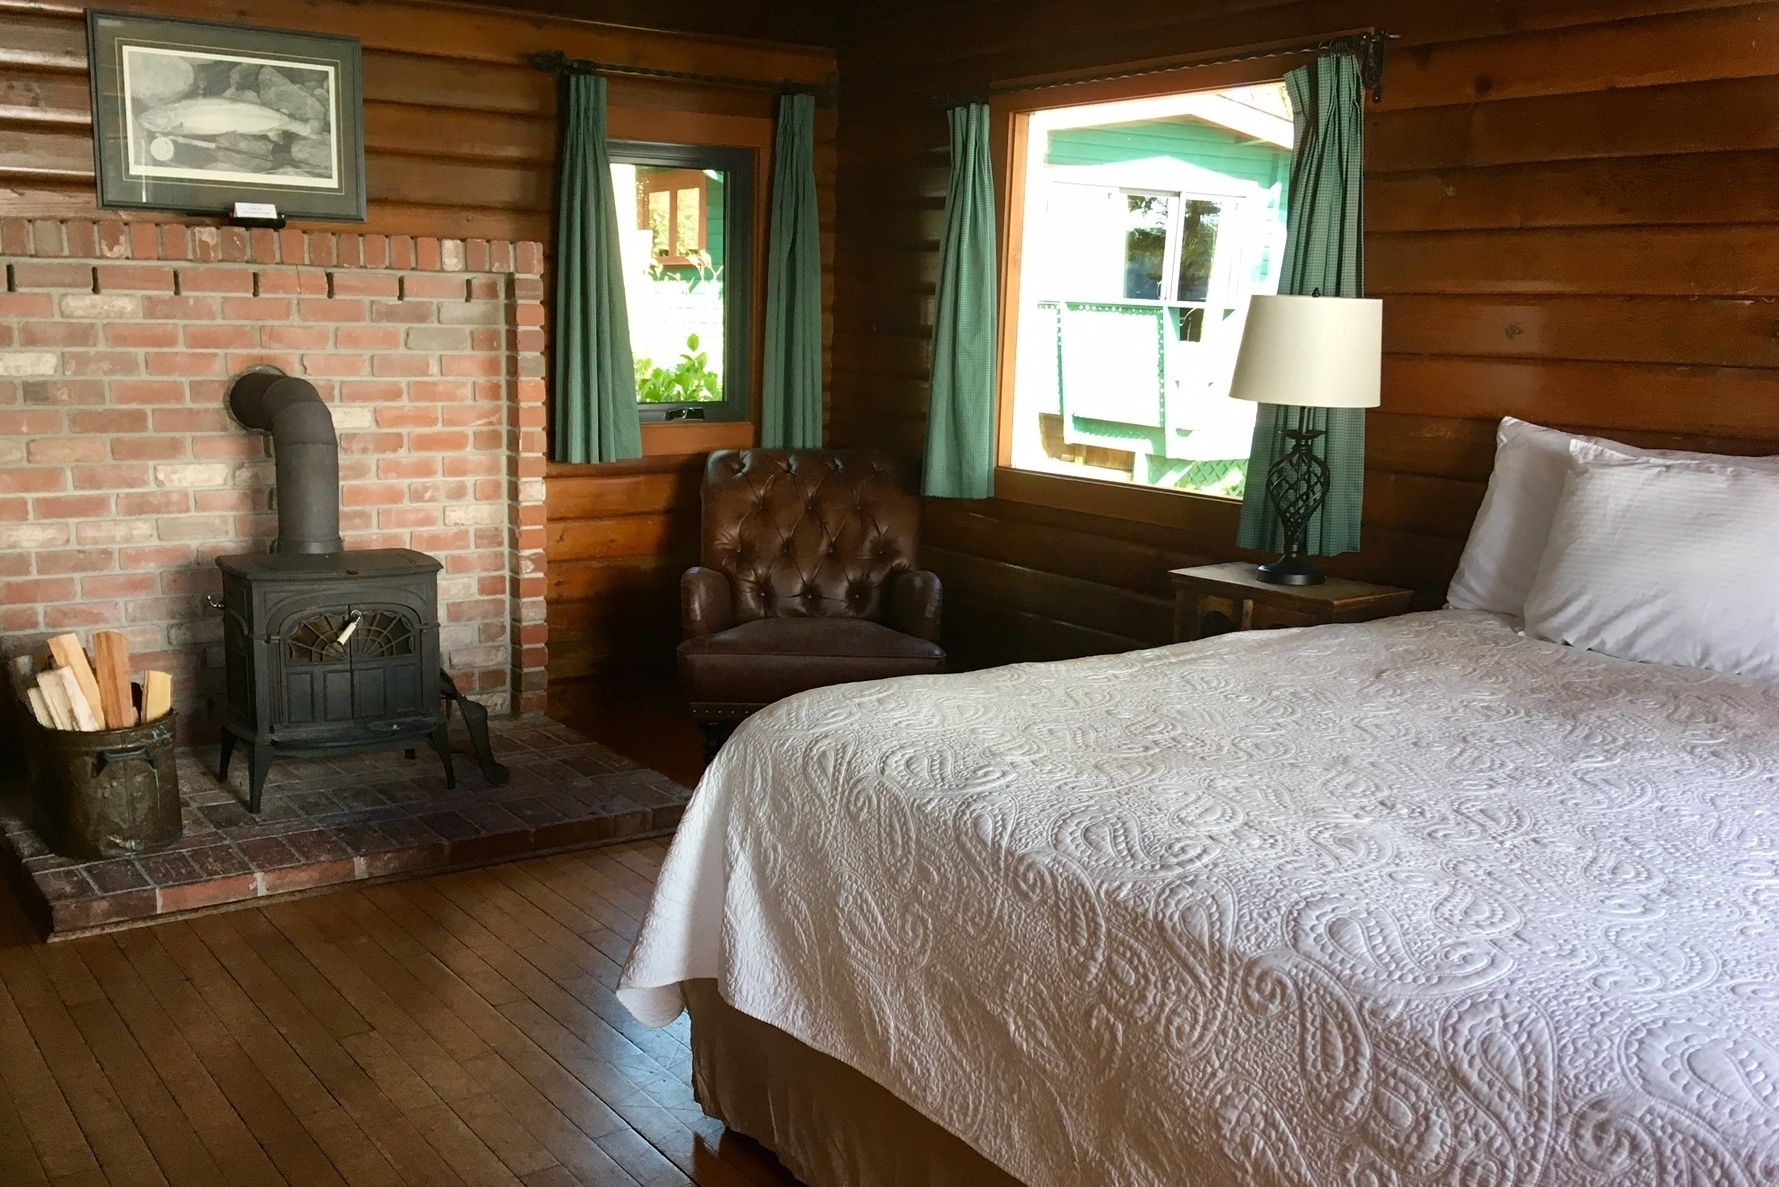 CABIN 4 & 5 - Duplex Studio  Two separate studios that share one of the most captivating views. From $219-$295